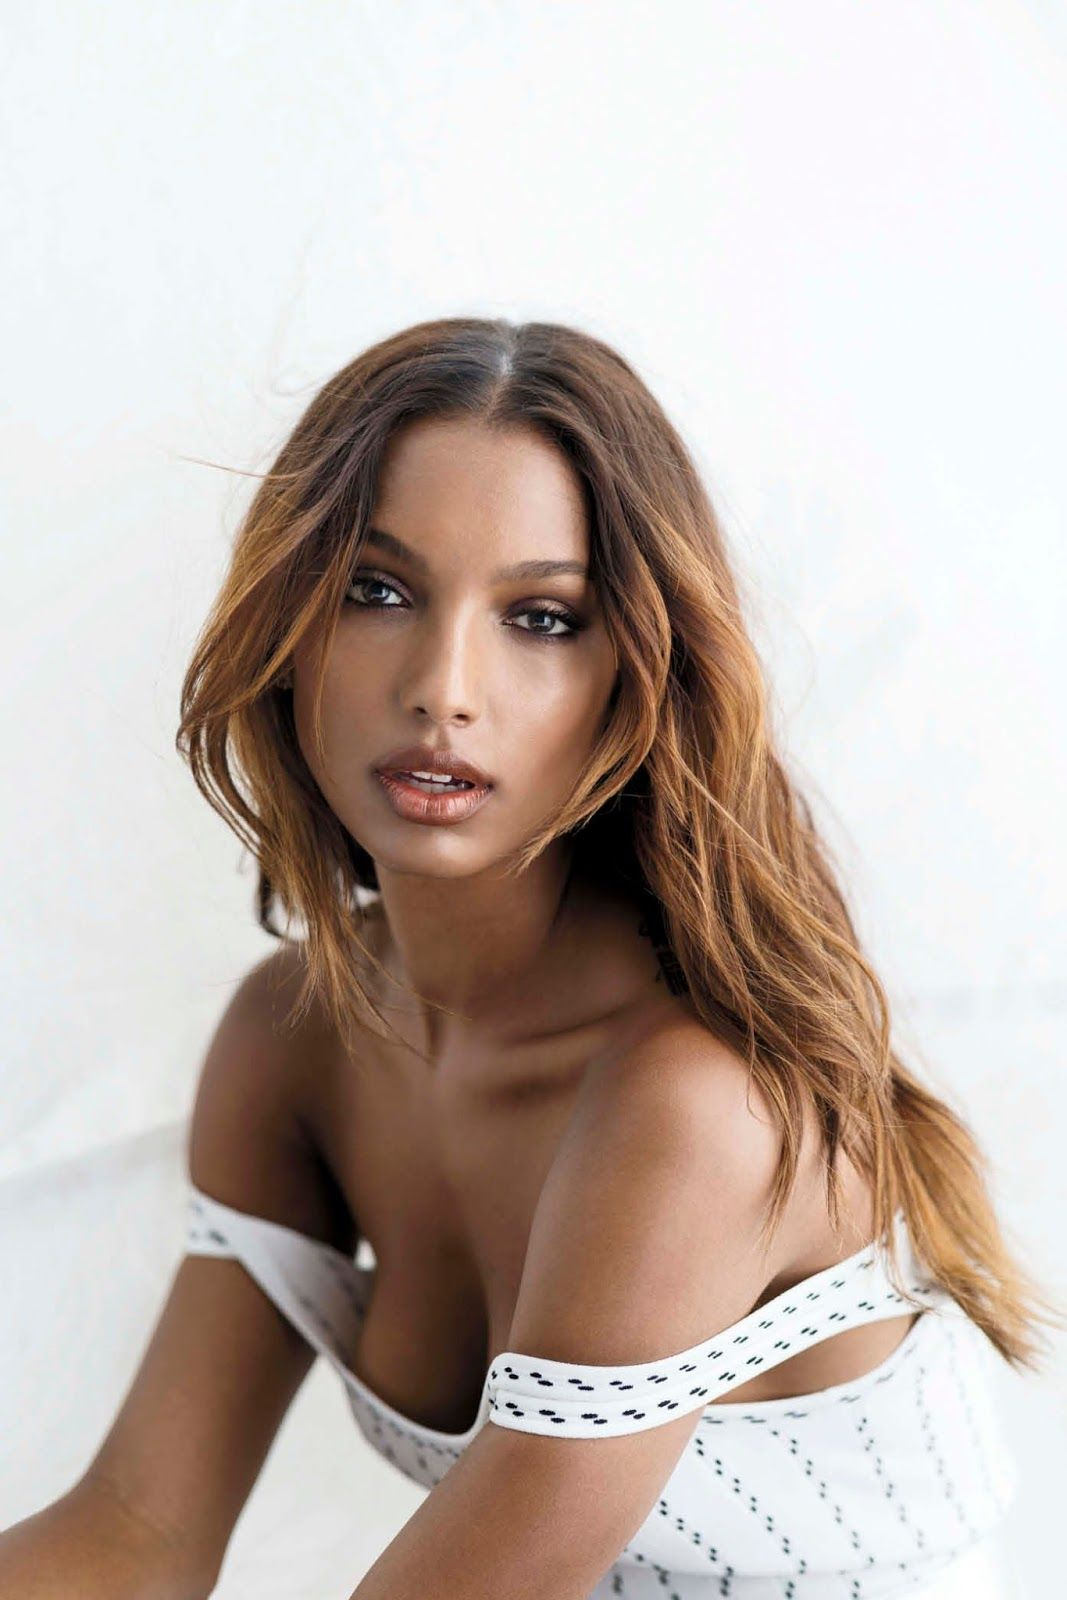 a20f637f06 EDITORIAL+COVER  Jasmine Tookes in Maxim US February 2017 by Gilles  Bensimon — Like A Diamond — Photography  Gilles Bensimon